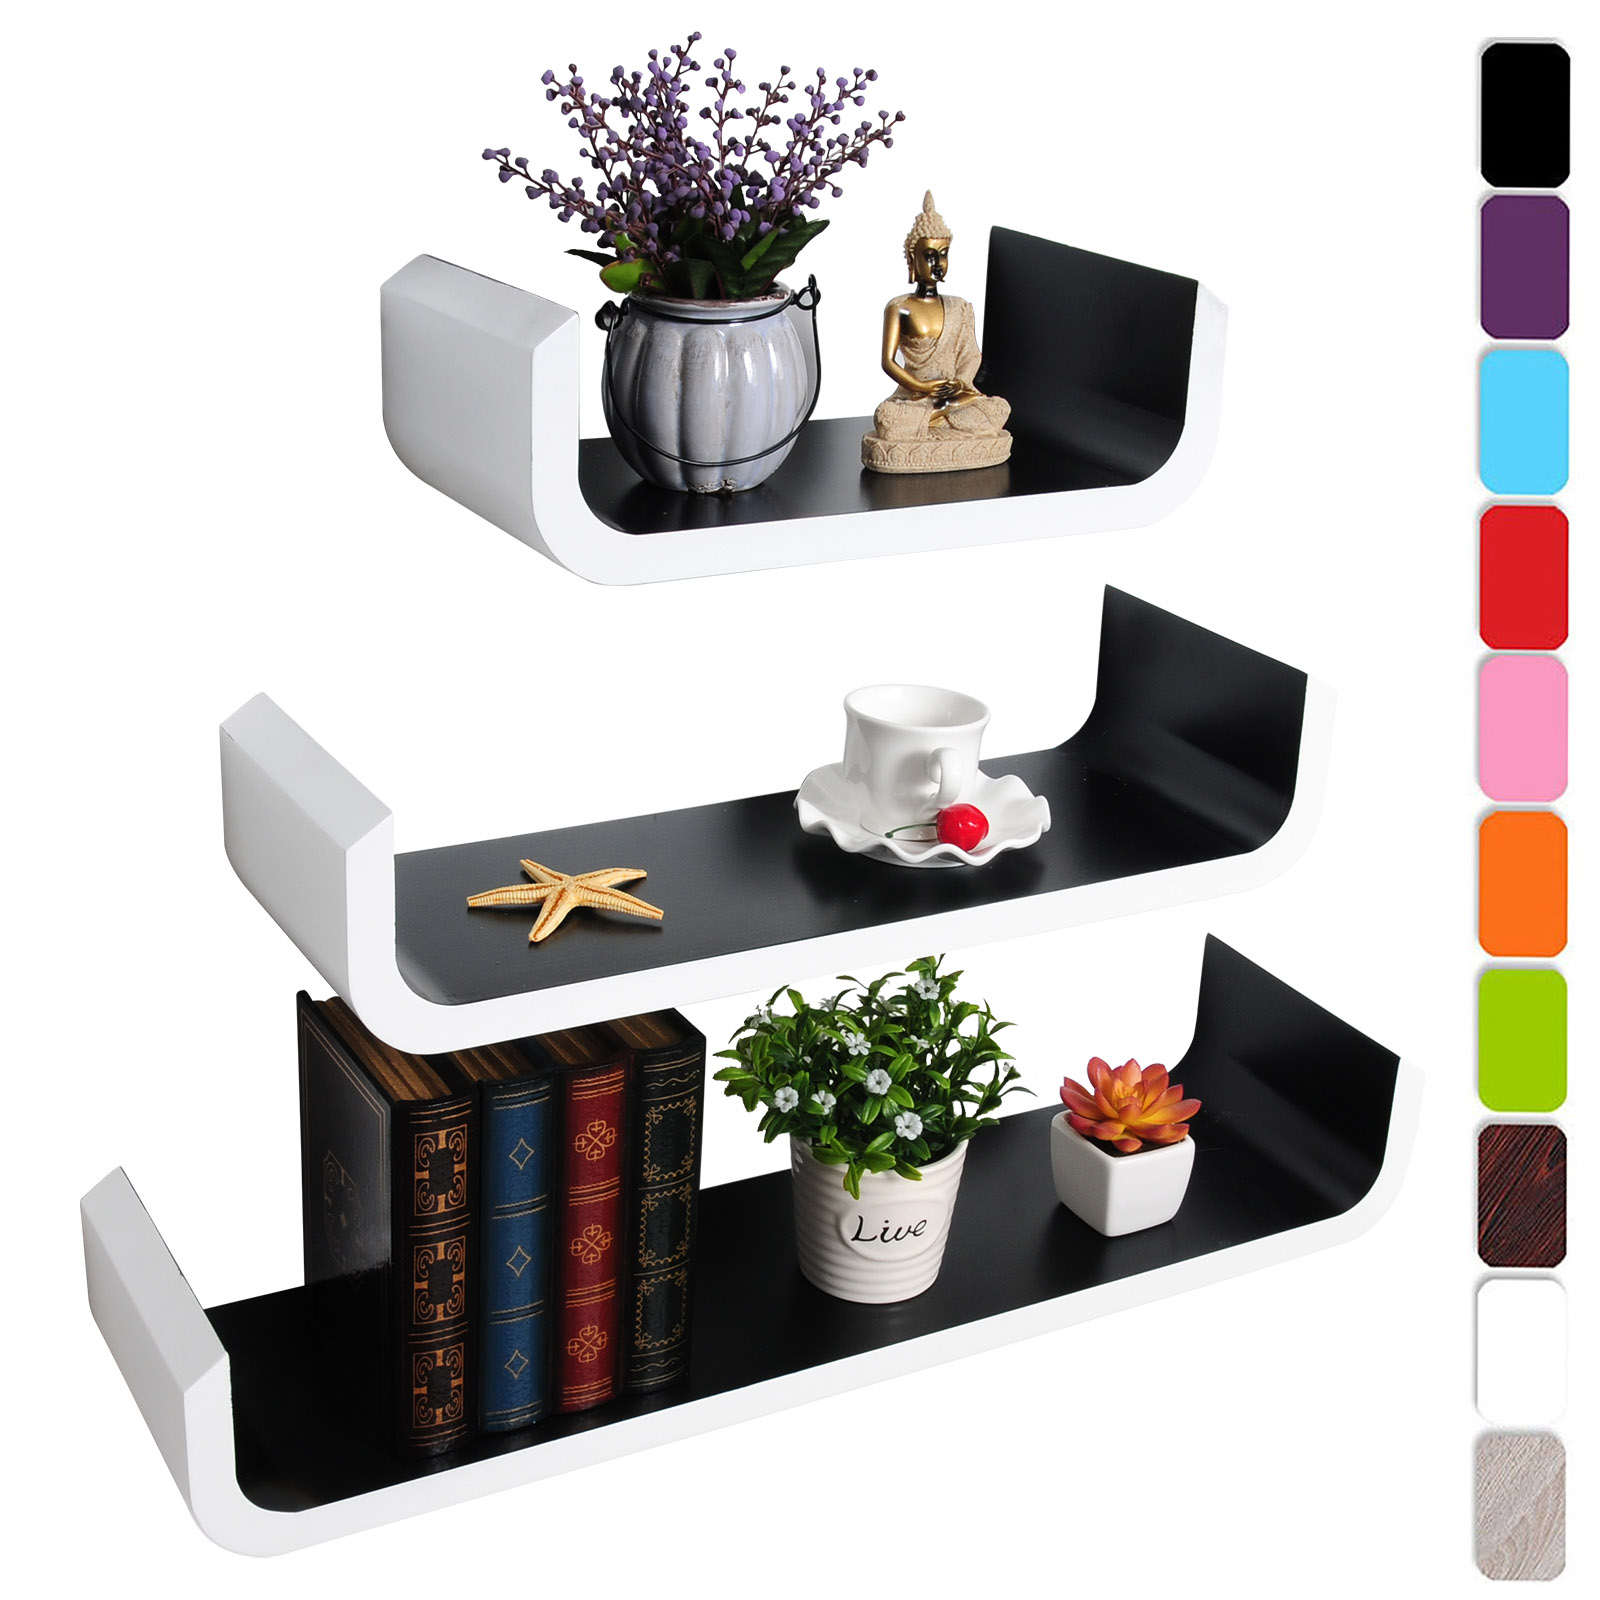 lot de 3 tag re murale en mdf pour livres cd dvd tag re de mini petit pot f122 ebay. Black Bedroom Furniture Sets. Home Design Ideas